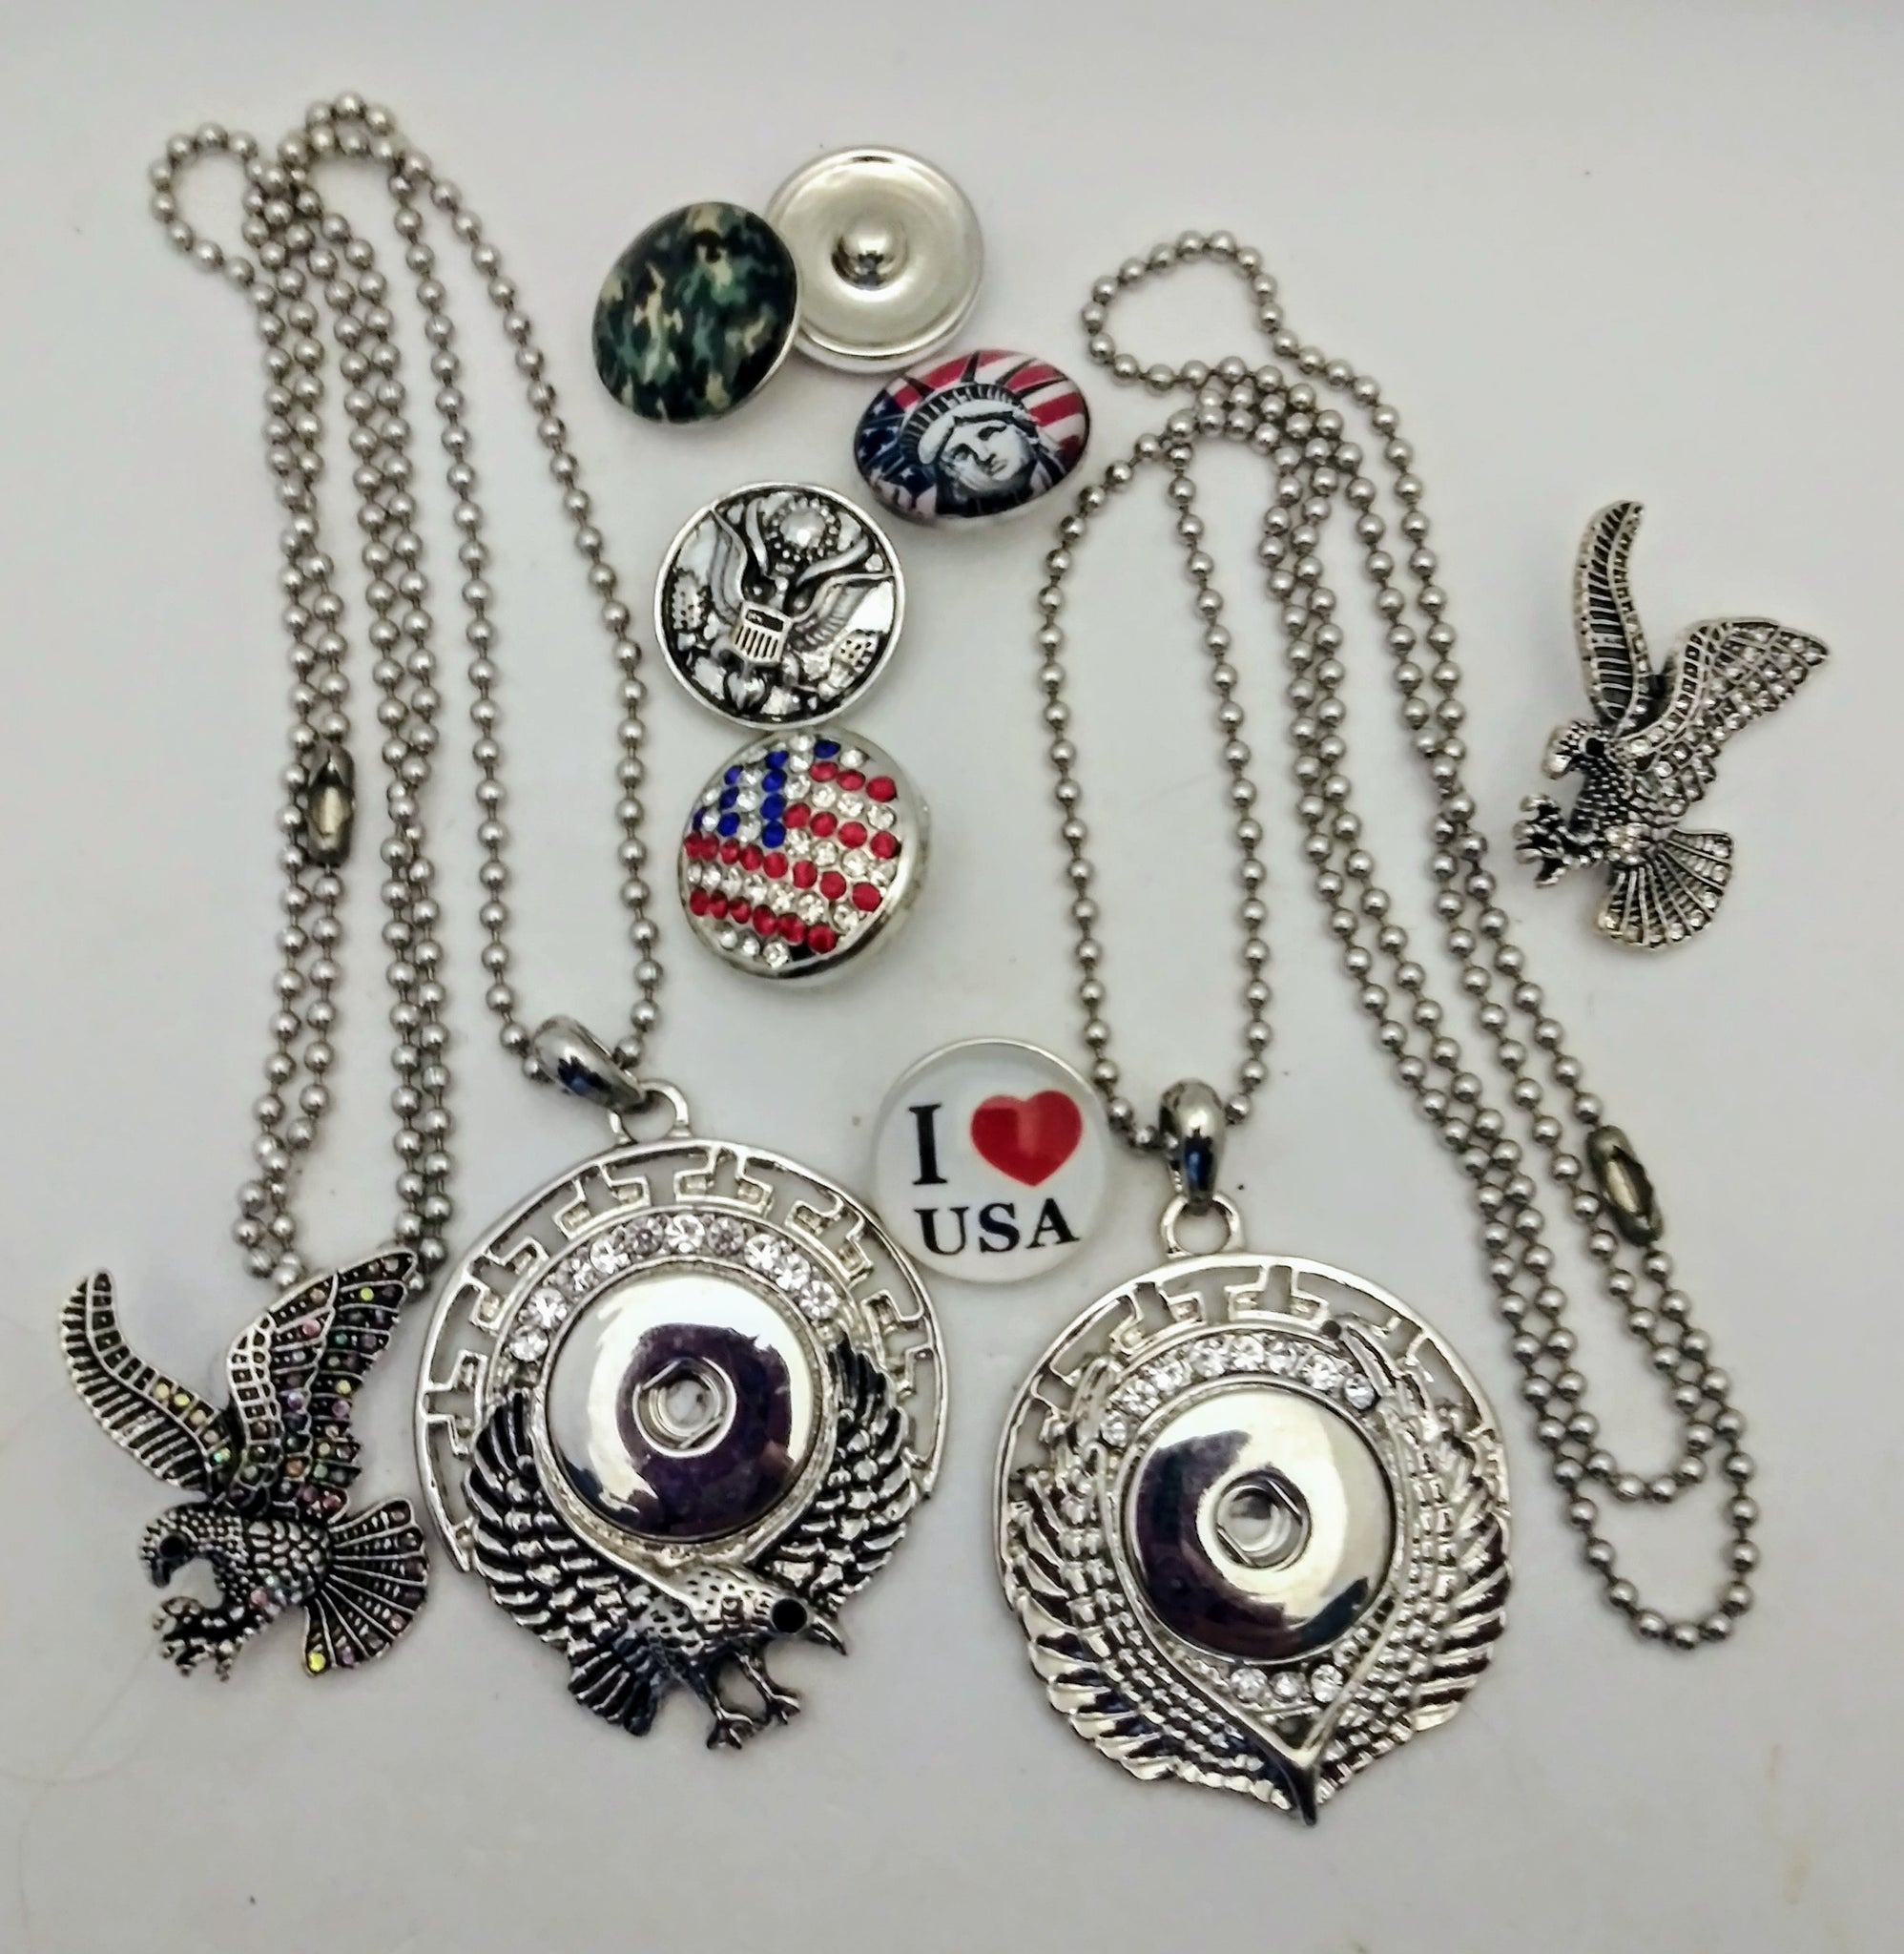 Patriotic USA snaps and pendants 18mm